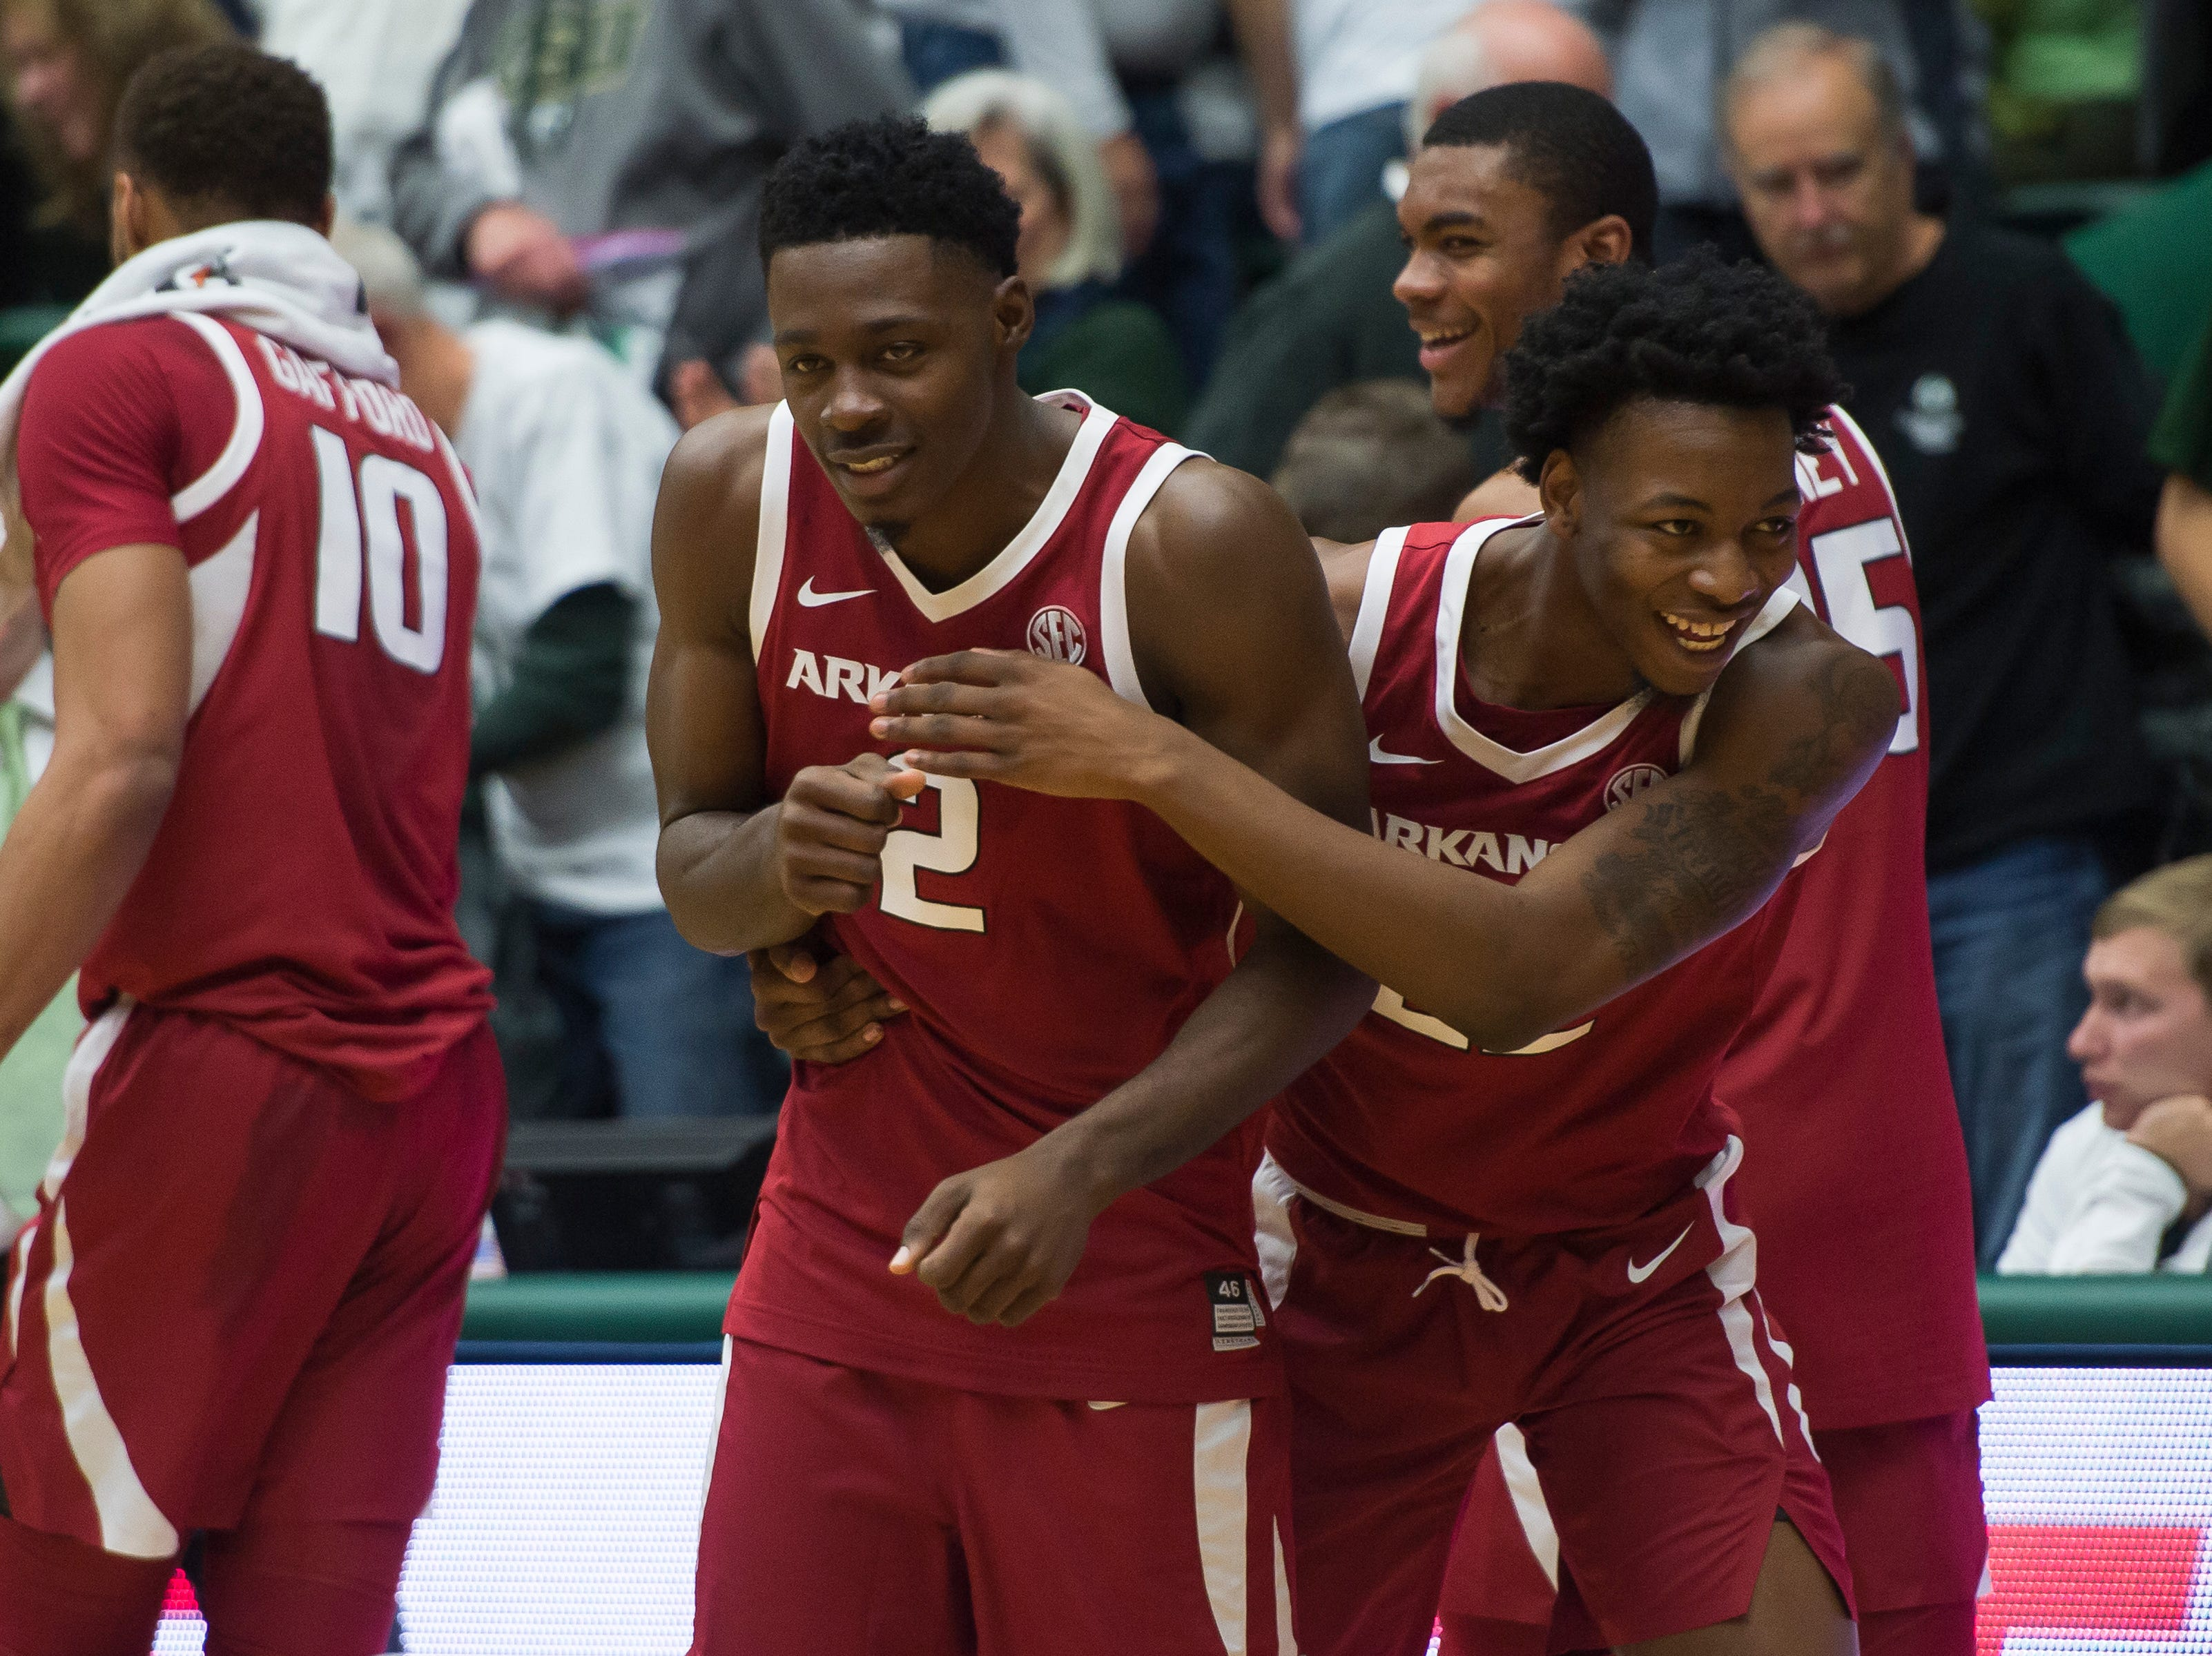 Arkansas sophomore forward Gabe Osabuohien (22) hugs junior forward Adrio Bailey (2) after beating Colorado State University on Wednesday, Dec. 5, 2018, Moby Arena in Fort Collins, Colo.